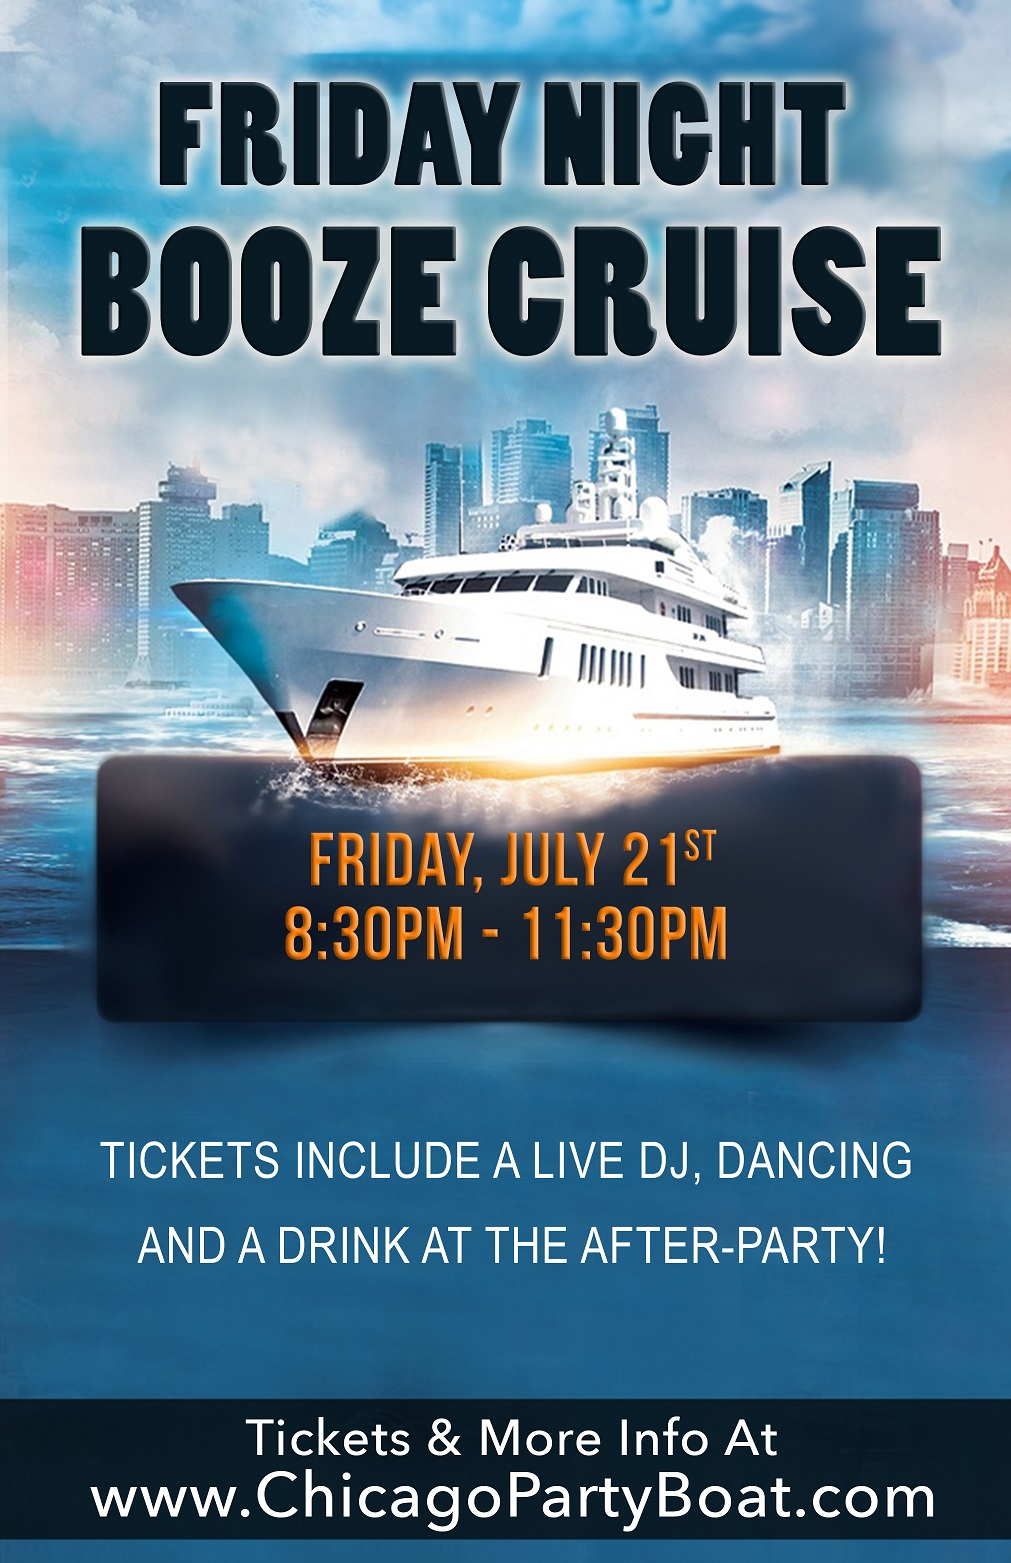 Friday Night Booze Cruise - Come out on our three story luxury yacht for a cruise on Lake Michigan! Tickets include a Live DJ, Dancing, and A Drink At The After-Party!